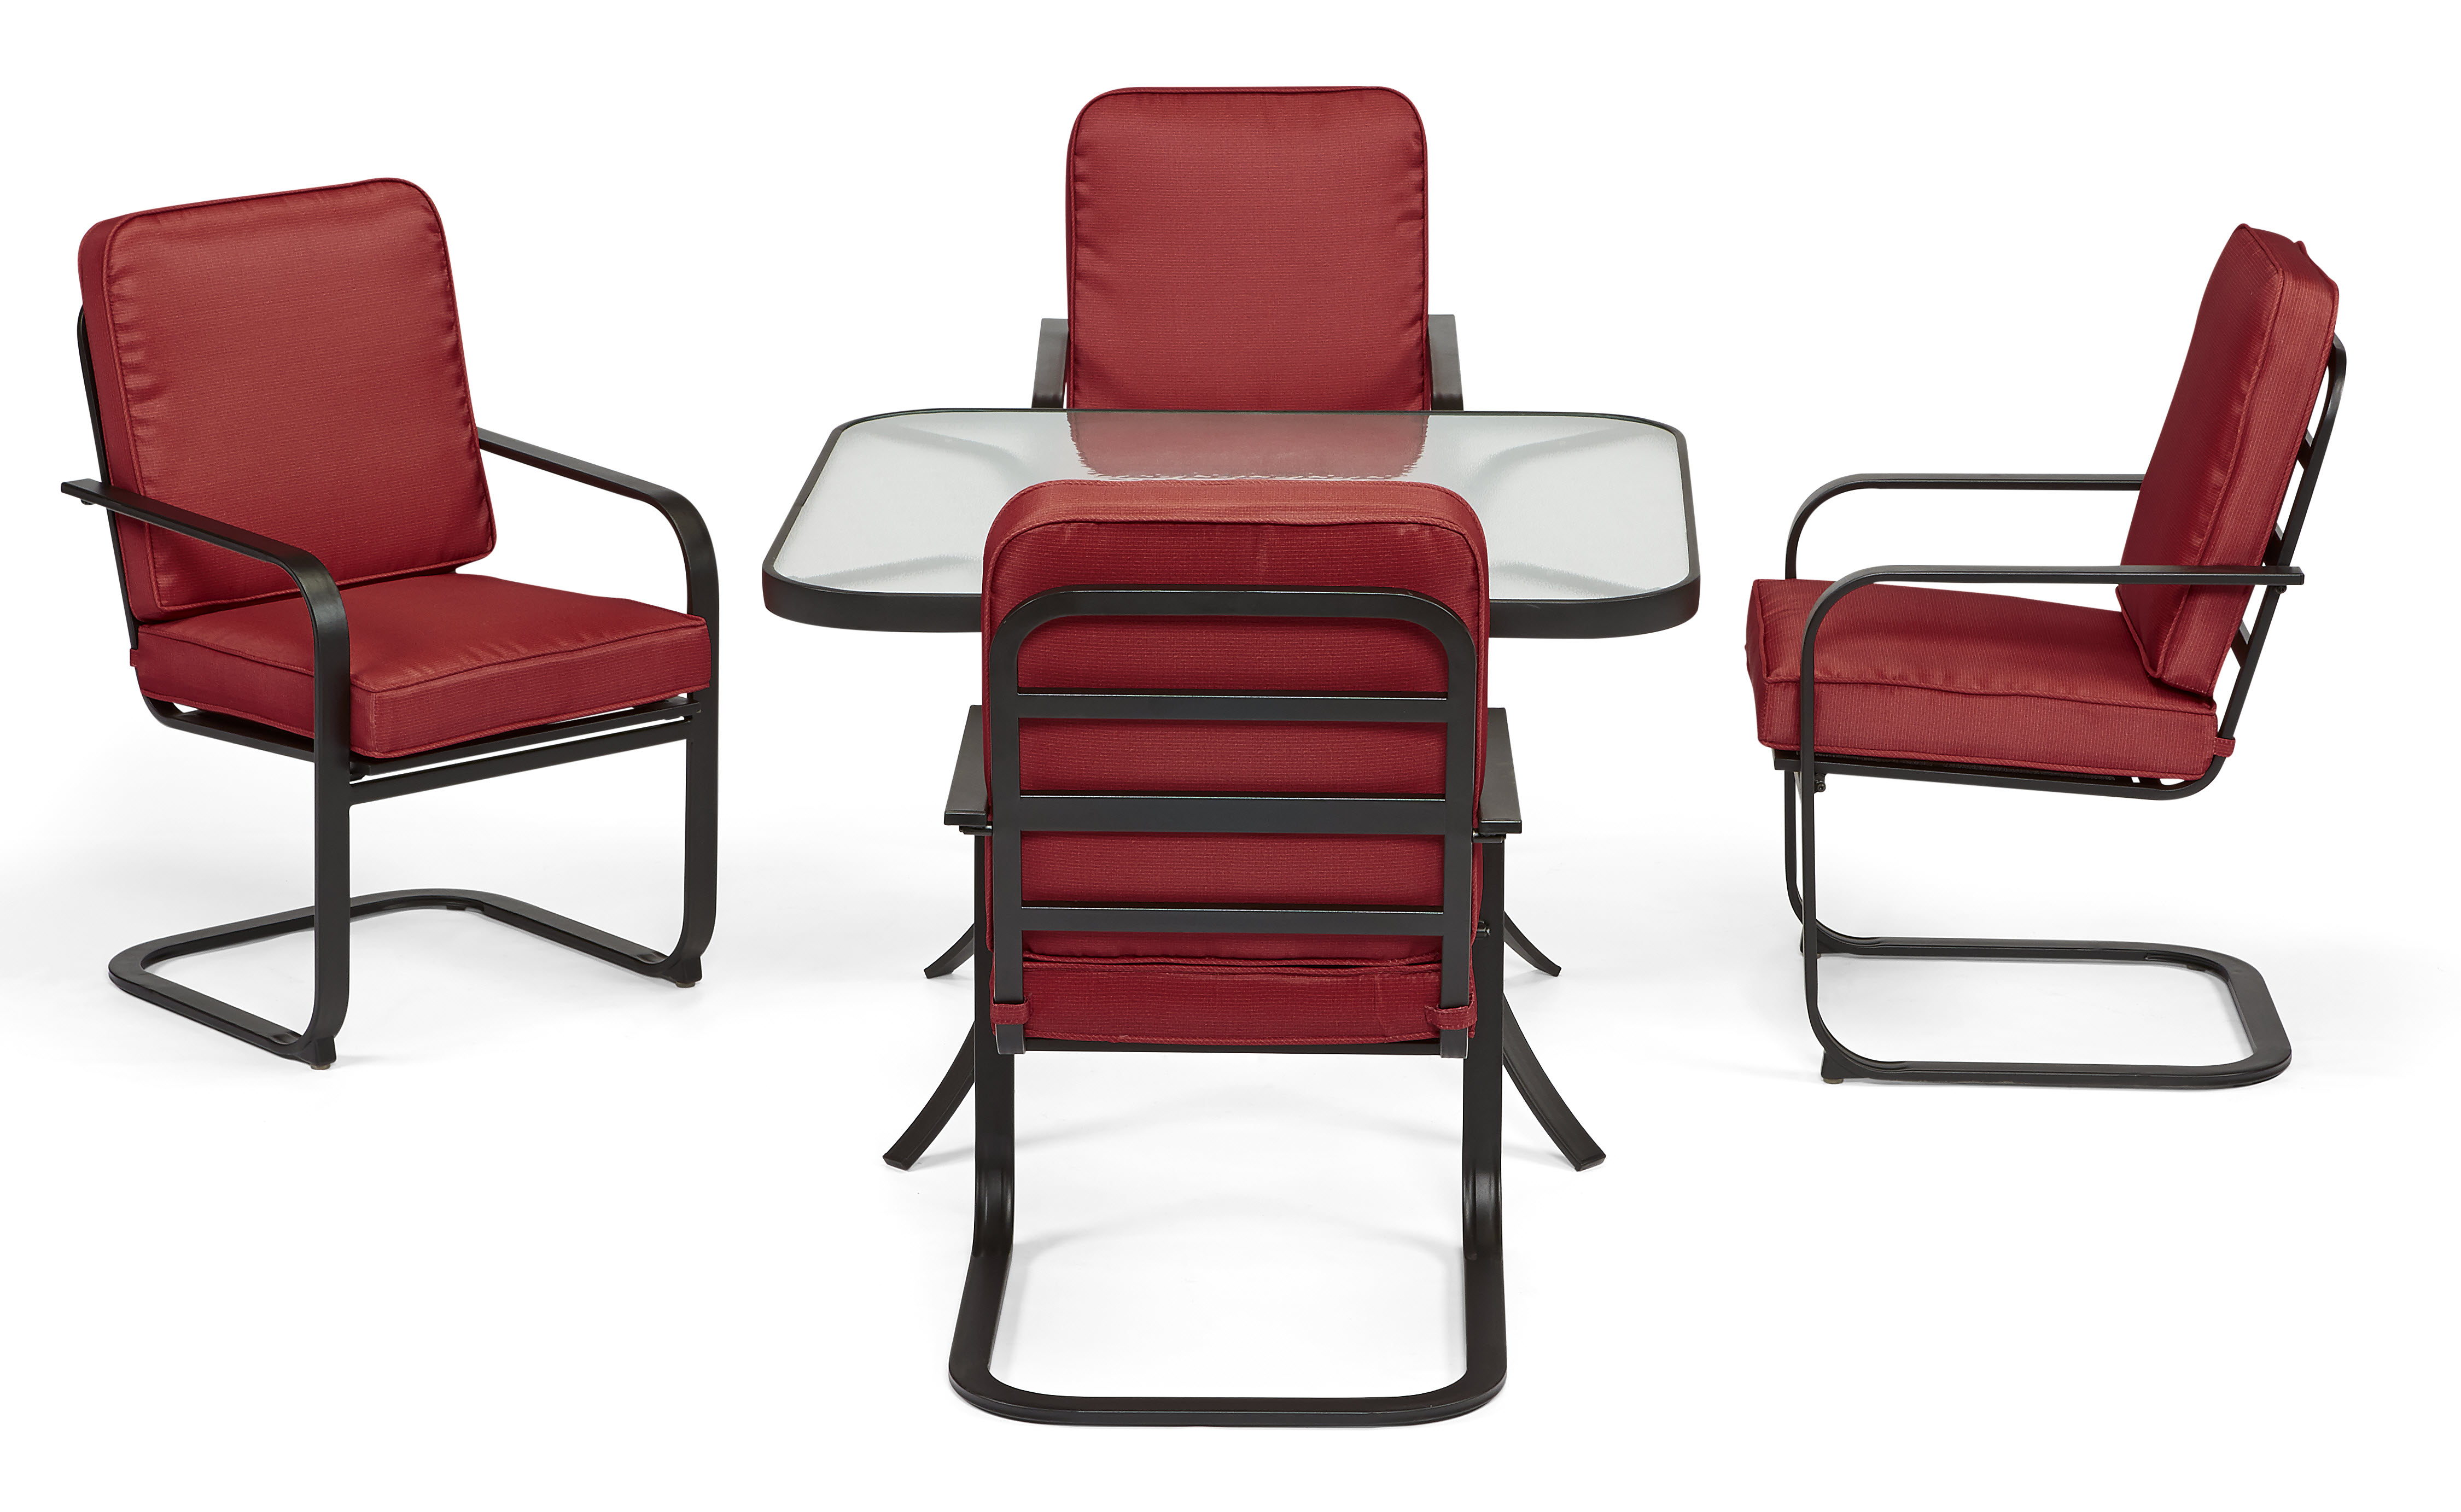 Essential Garden Bisbee Set of 4 Dining Chairs - Red